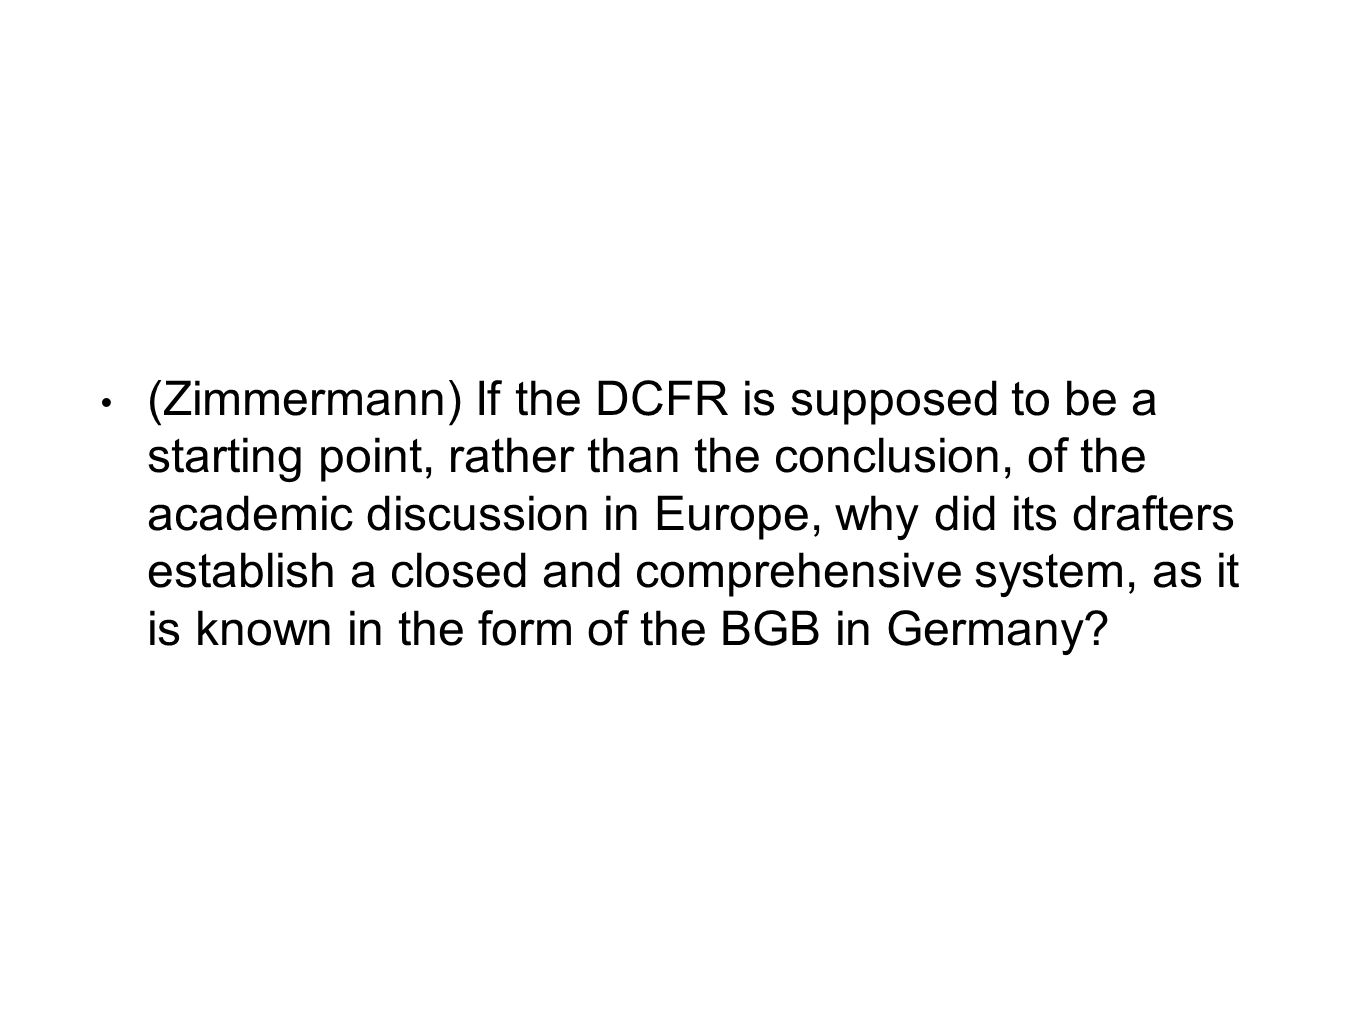 (Zimmermann) If the DCFR is supposed to be a starting point, rather than the conclusion, of the academic discussion in Europe, why did its drafters es